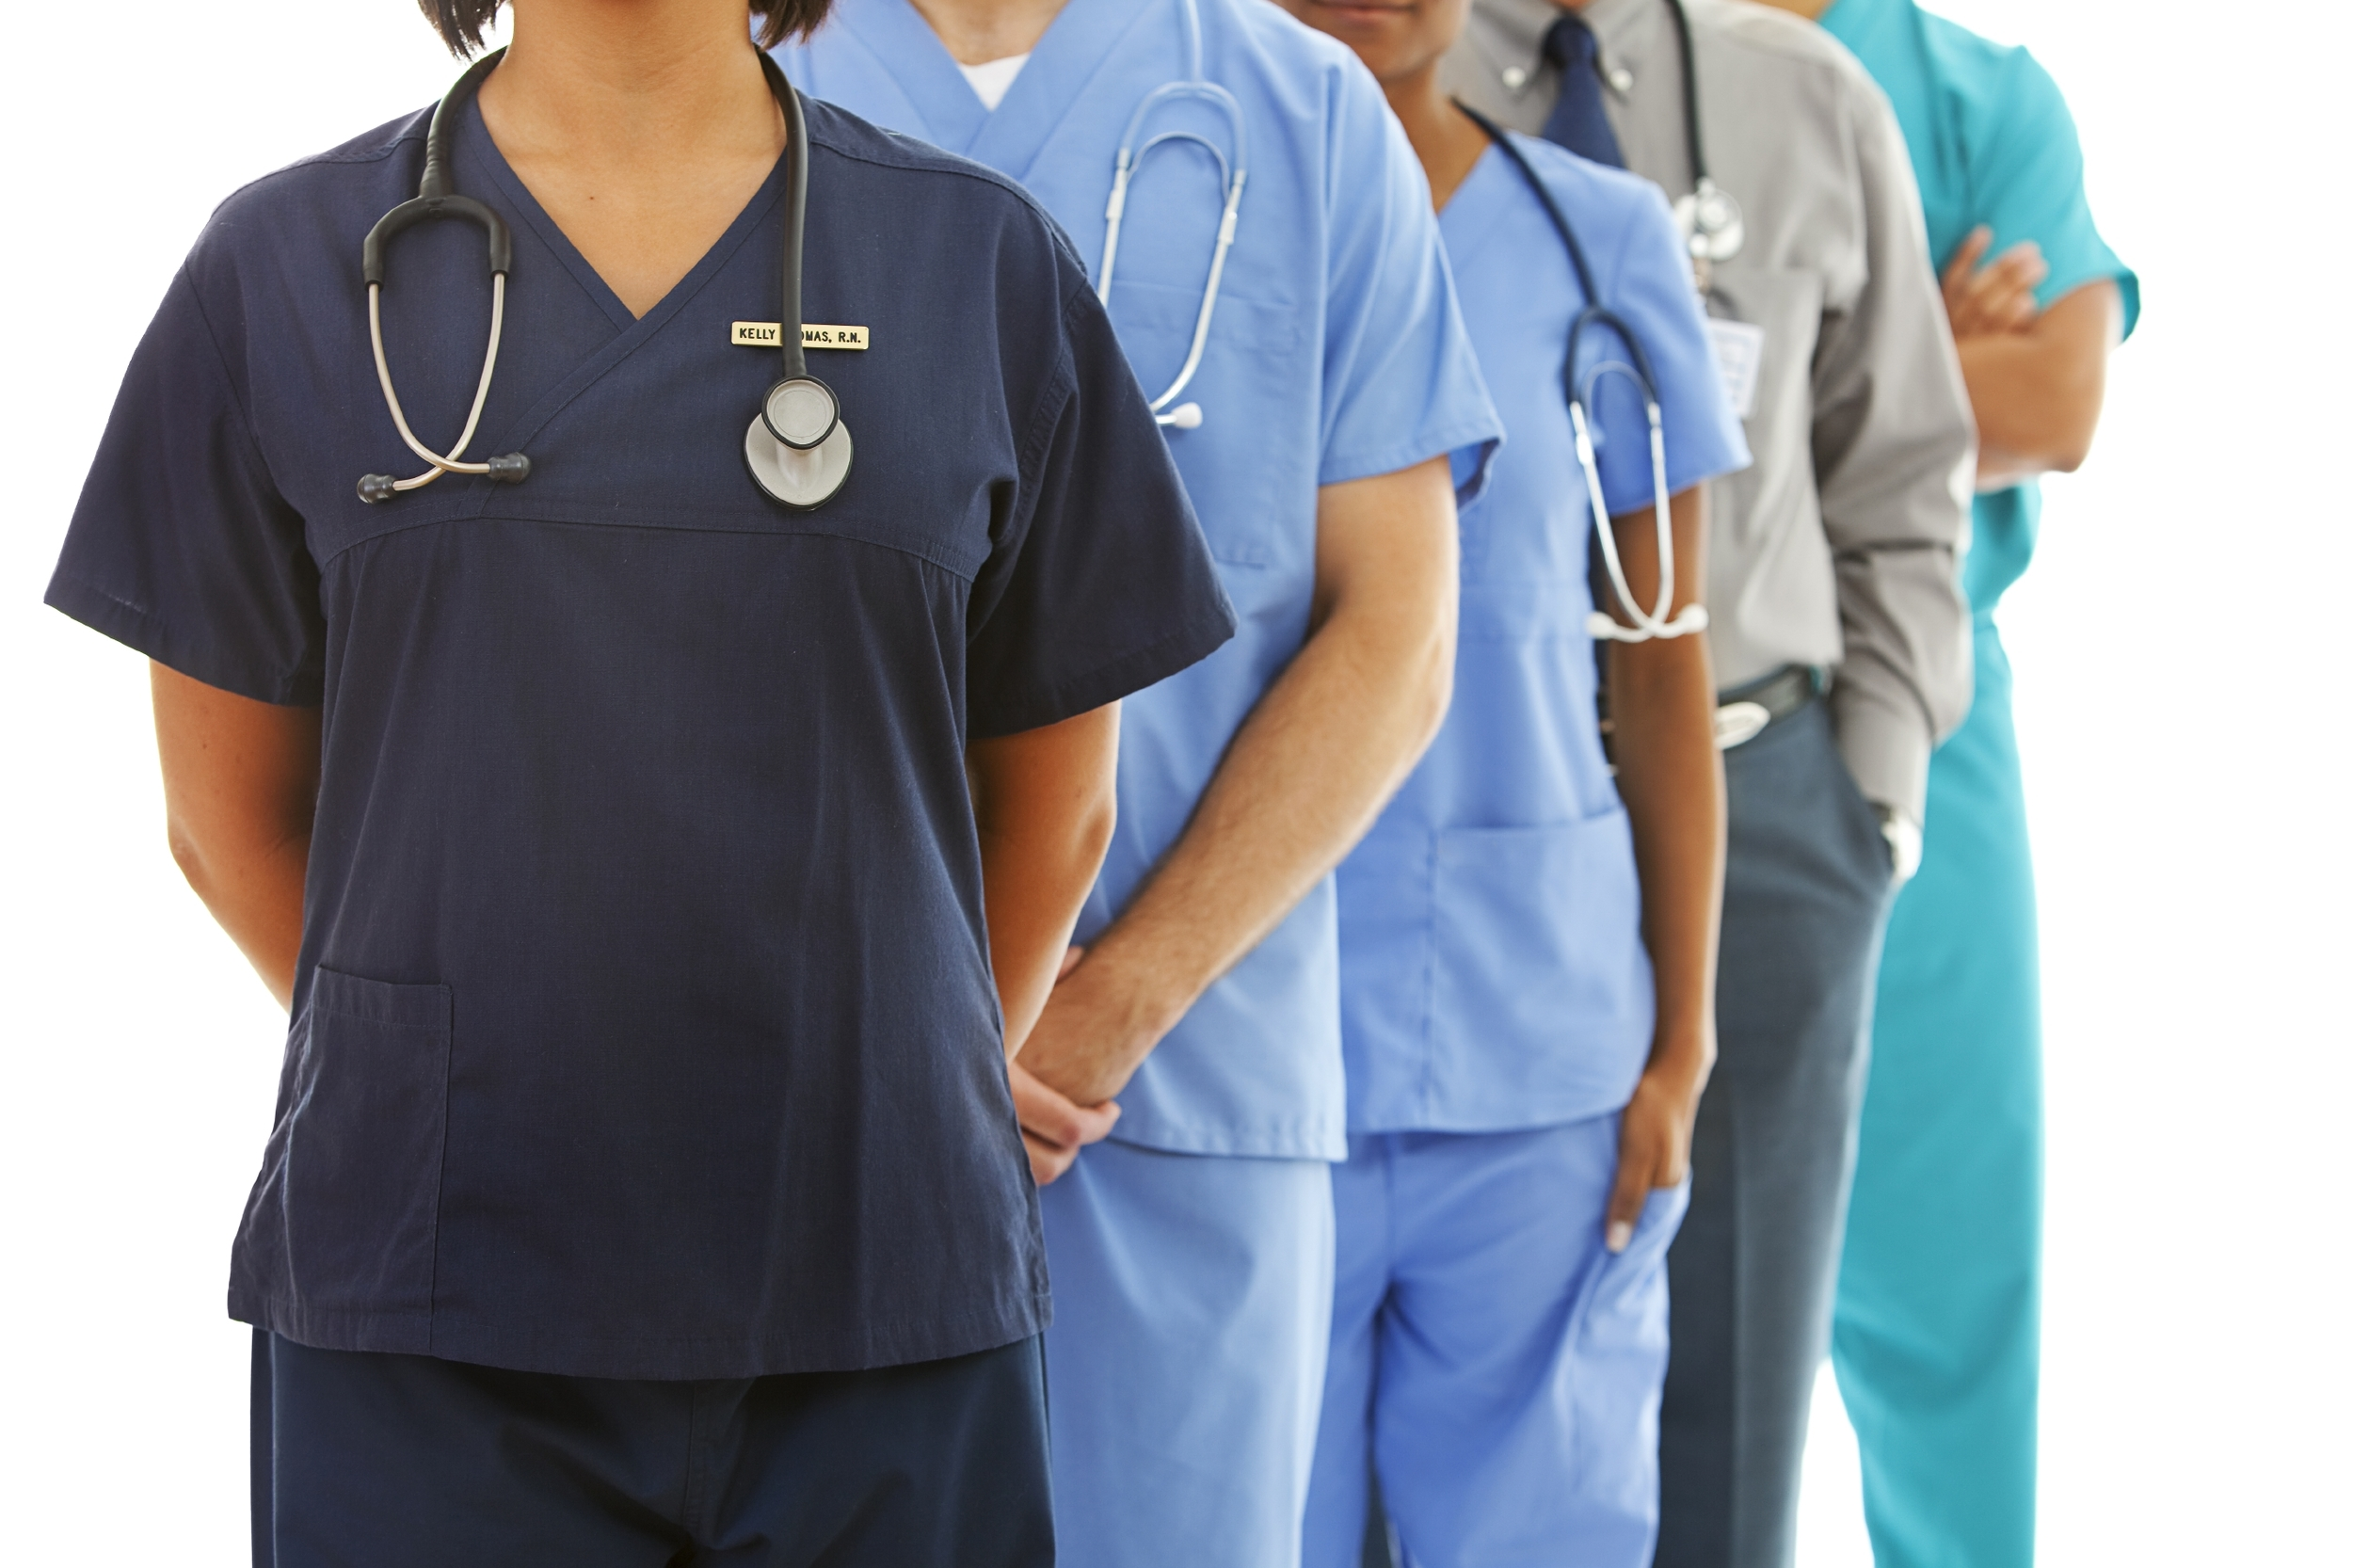 Healthcare workers with no faces showing